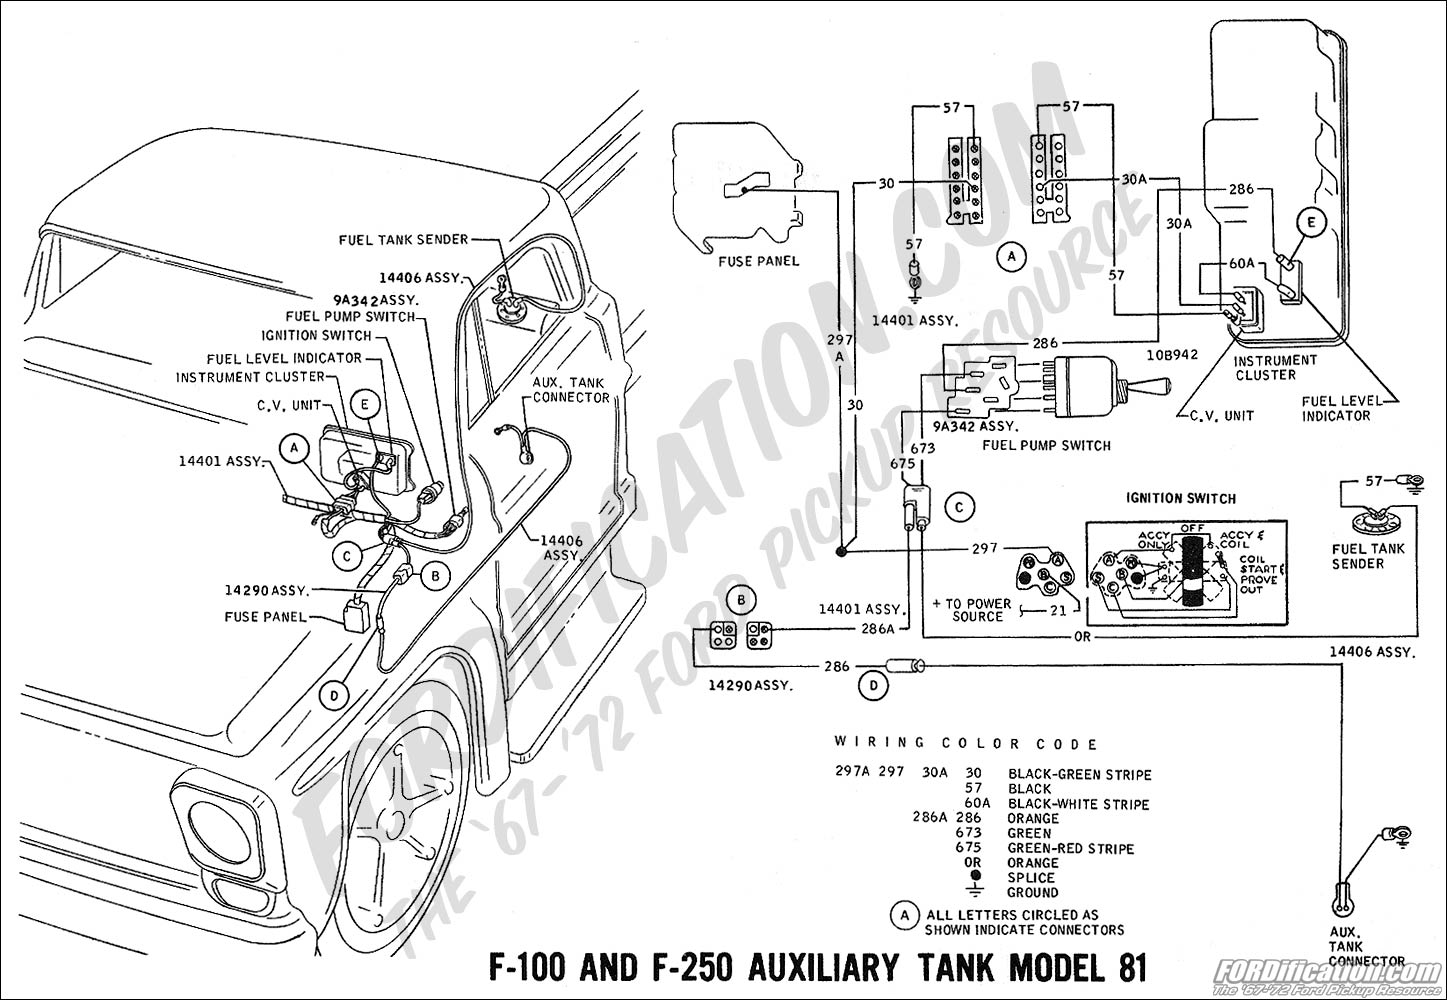 1983 ford fuse box online wiring diagram data1976 ford f150 fuse box diagram  online wiring diagram